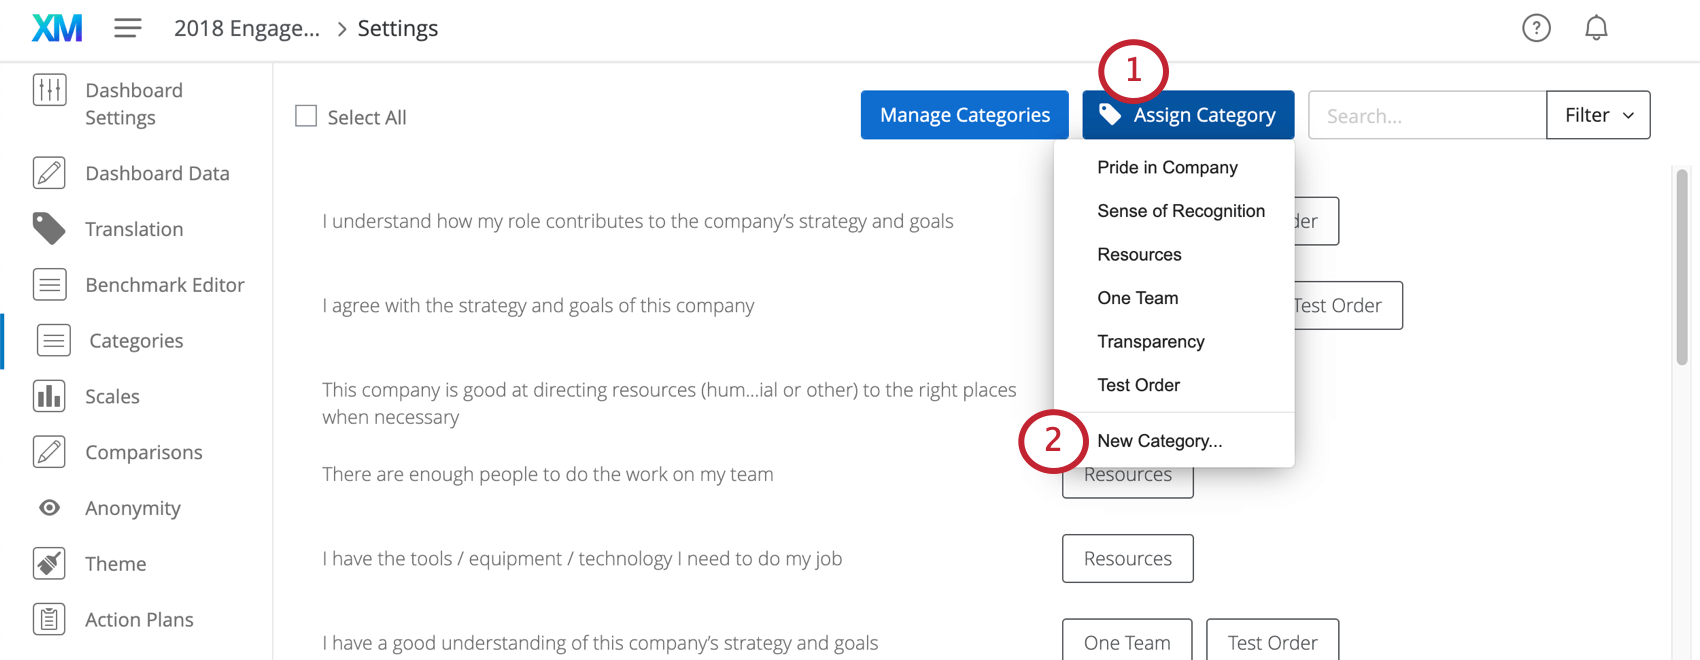 image of the assign category button